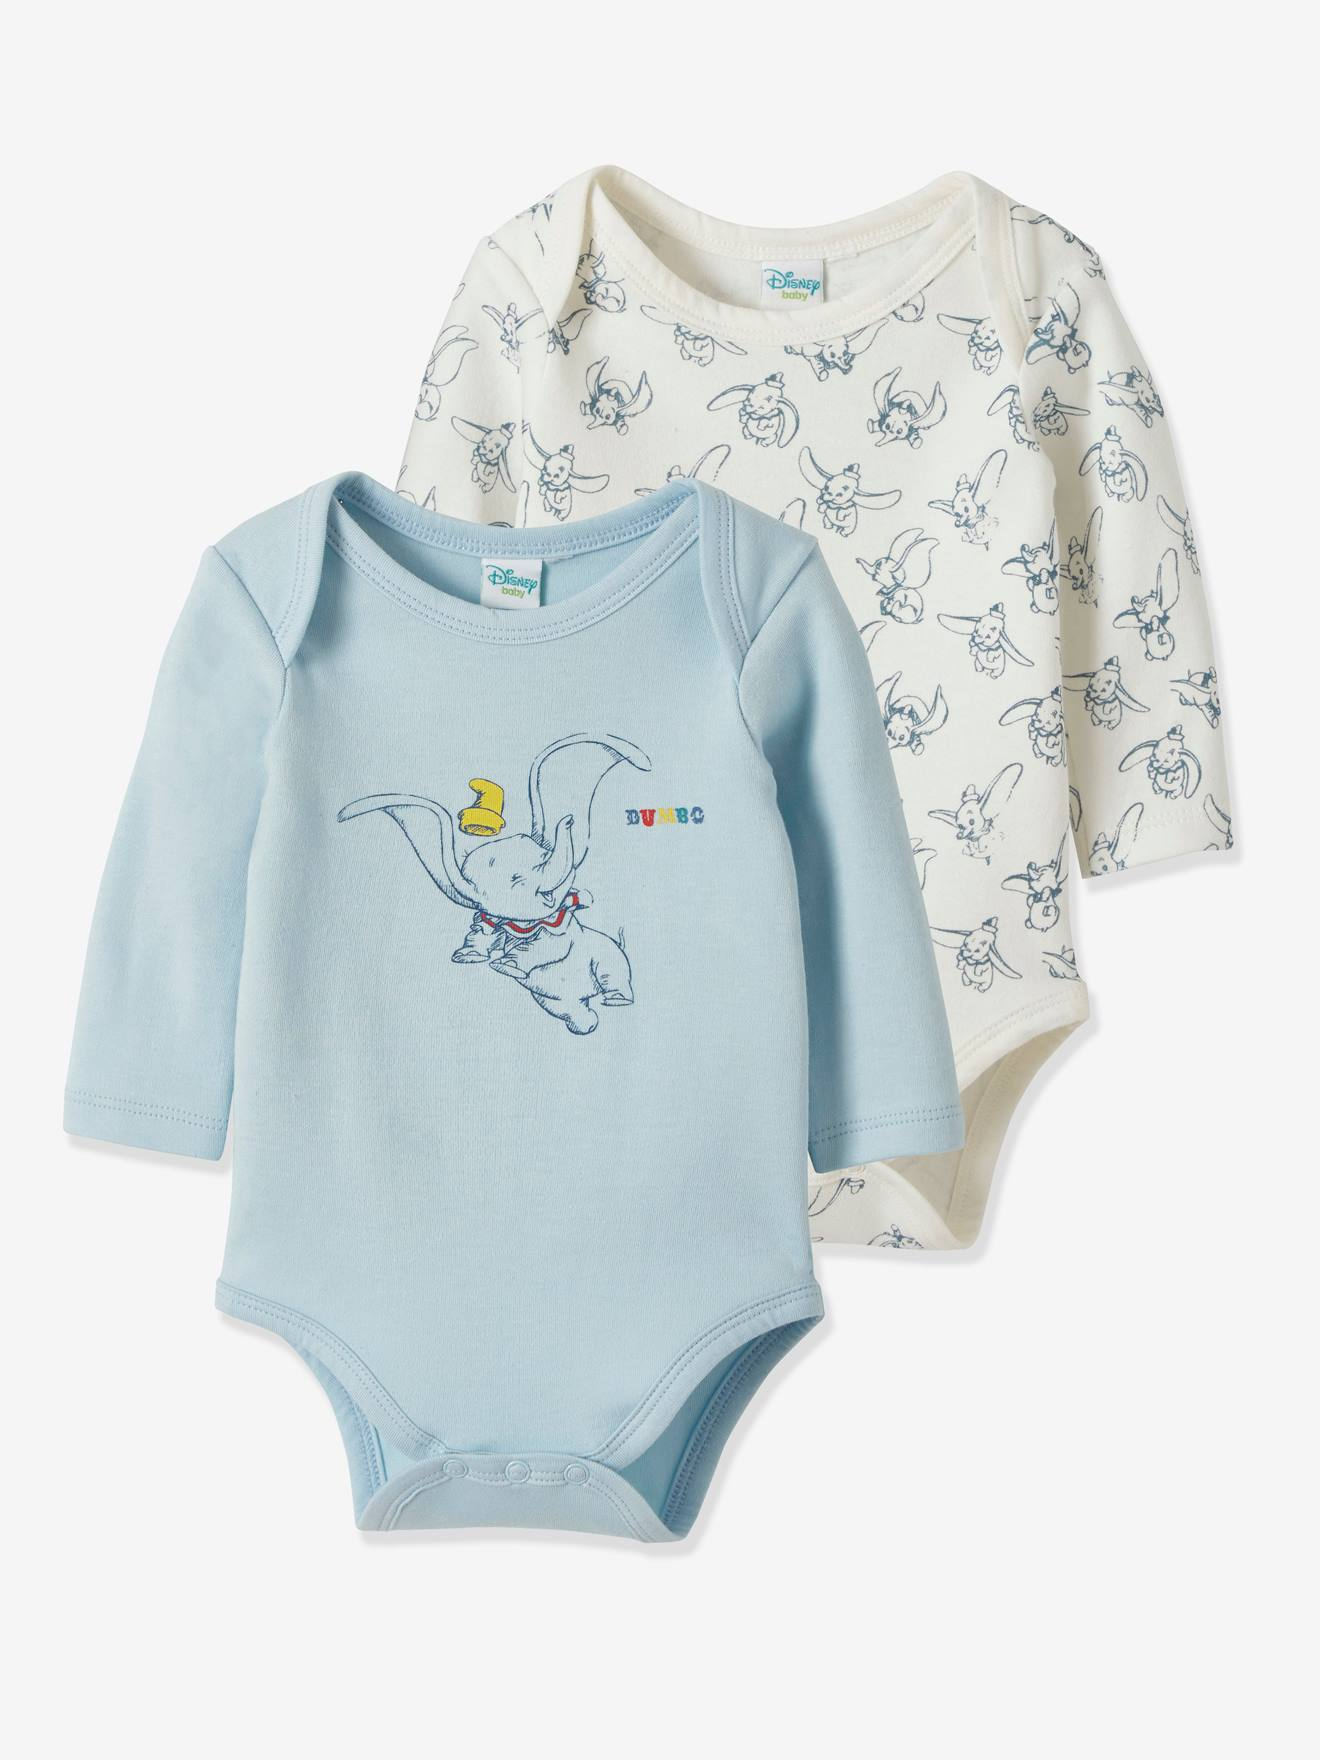 MICKEY  CLOTHING DUNGAREES BABY DISNEY CHARACTER DUMBO COMPLETE  OUTFIT